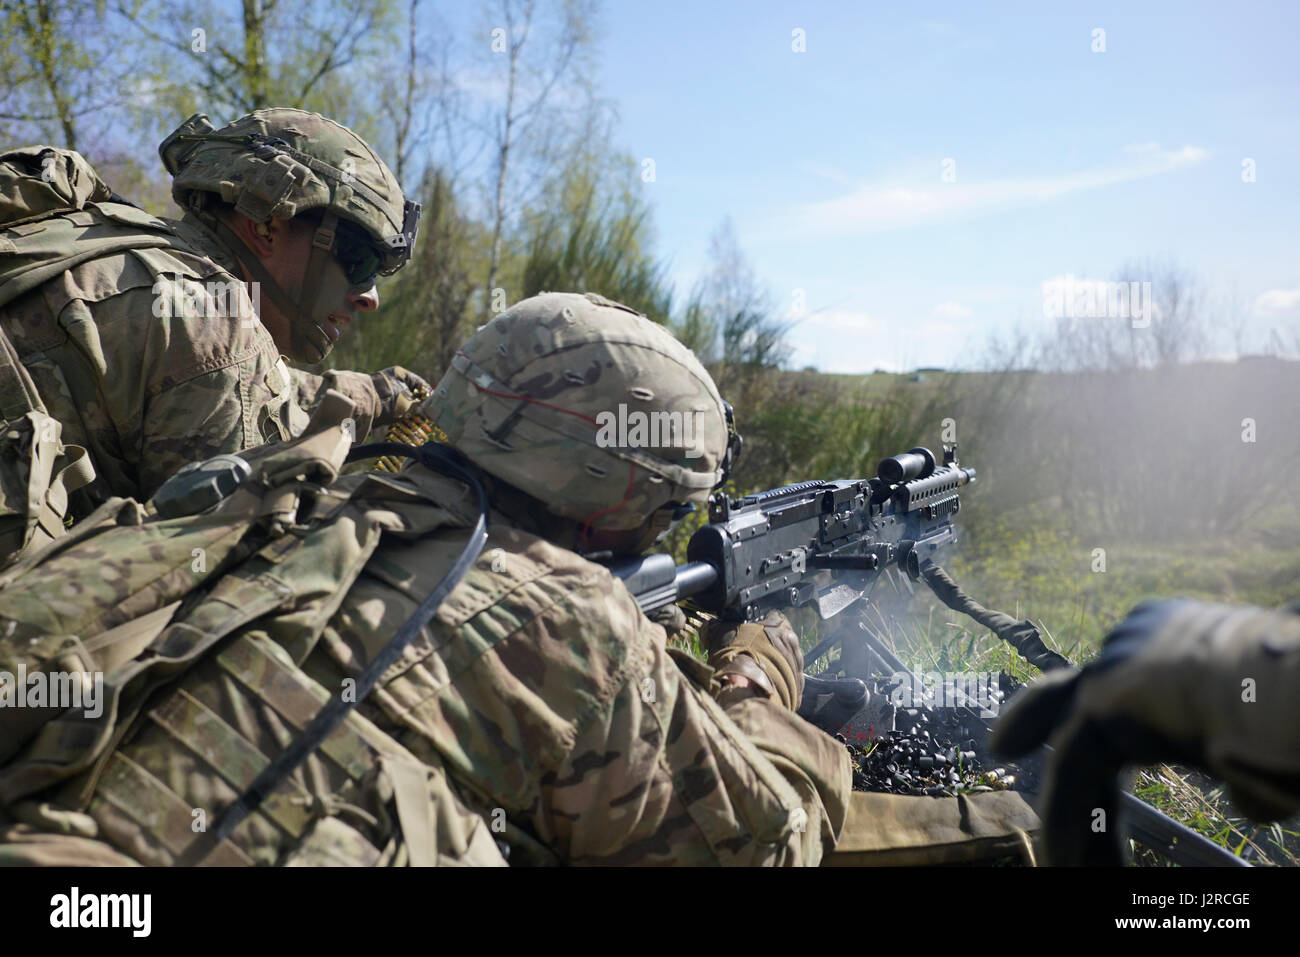 A U.S. Soldier of Comanche Troop, 4th Squadron, 10th Cavalry Regiment, 3rd Armored Brigade Combat Team, 4th Infantry - Stock Image